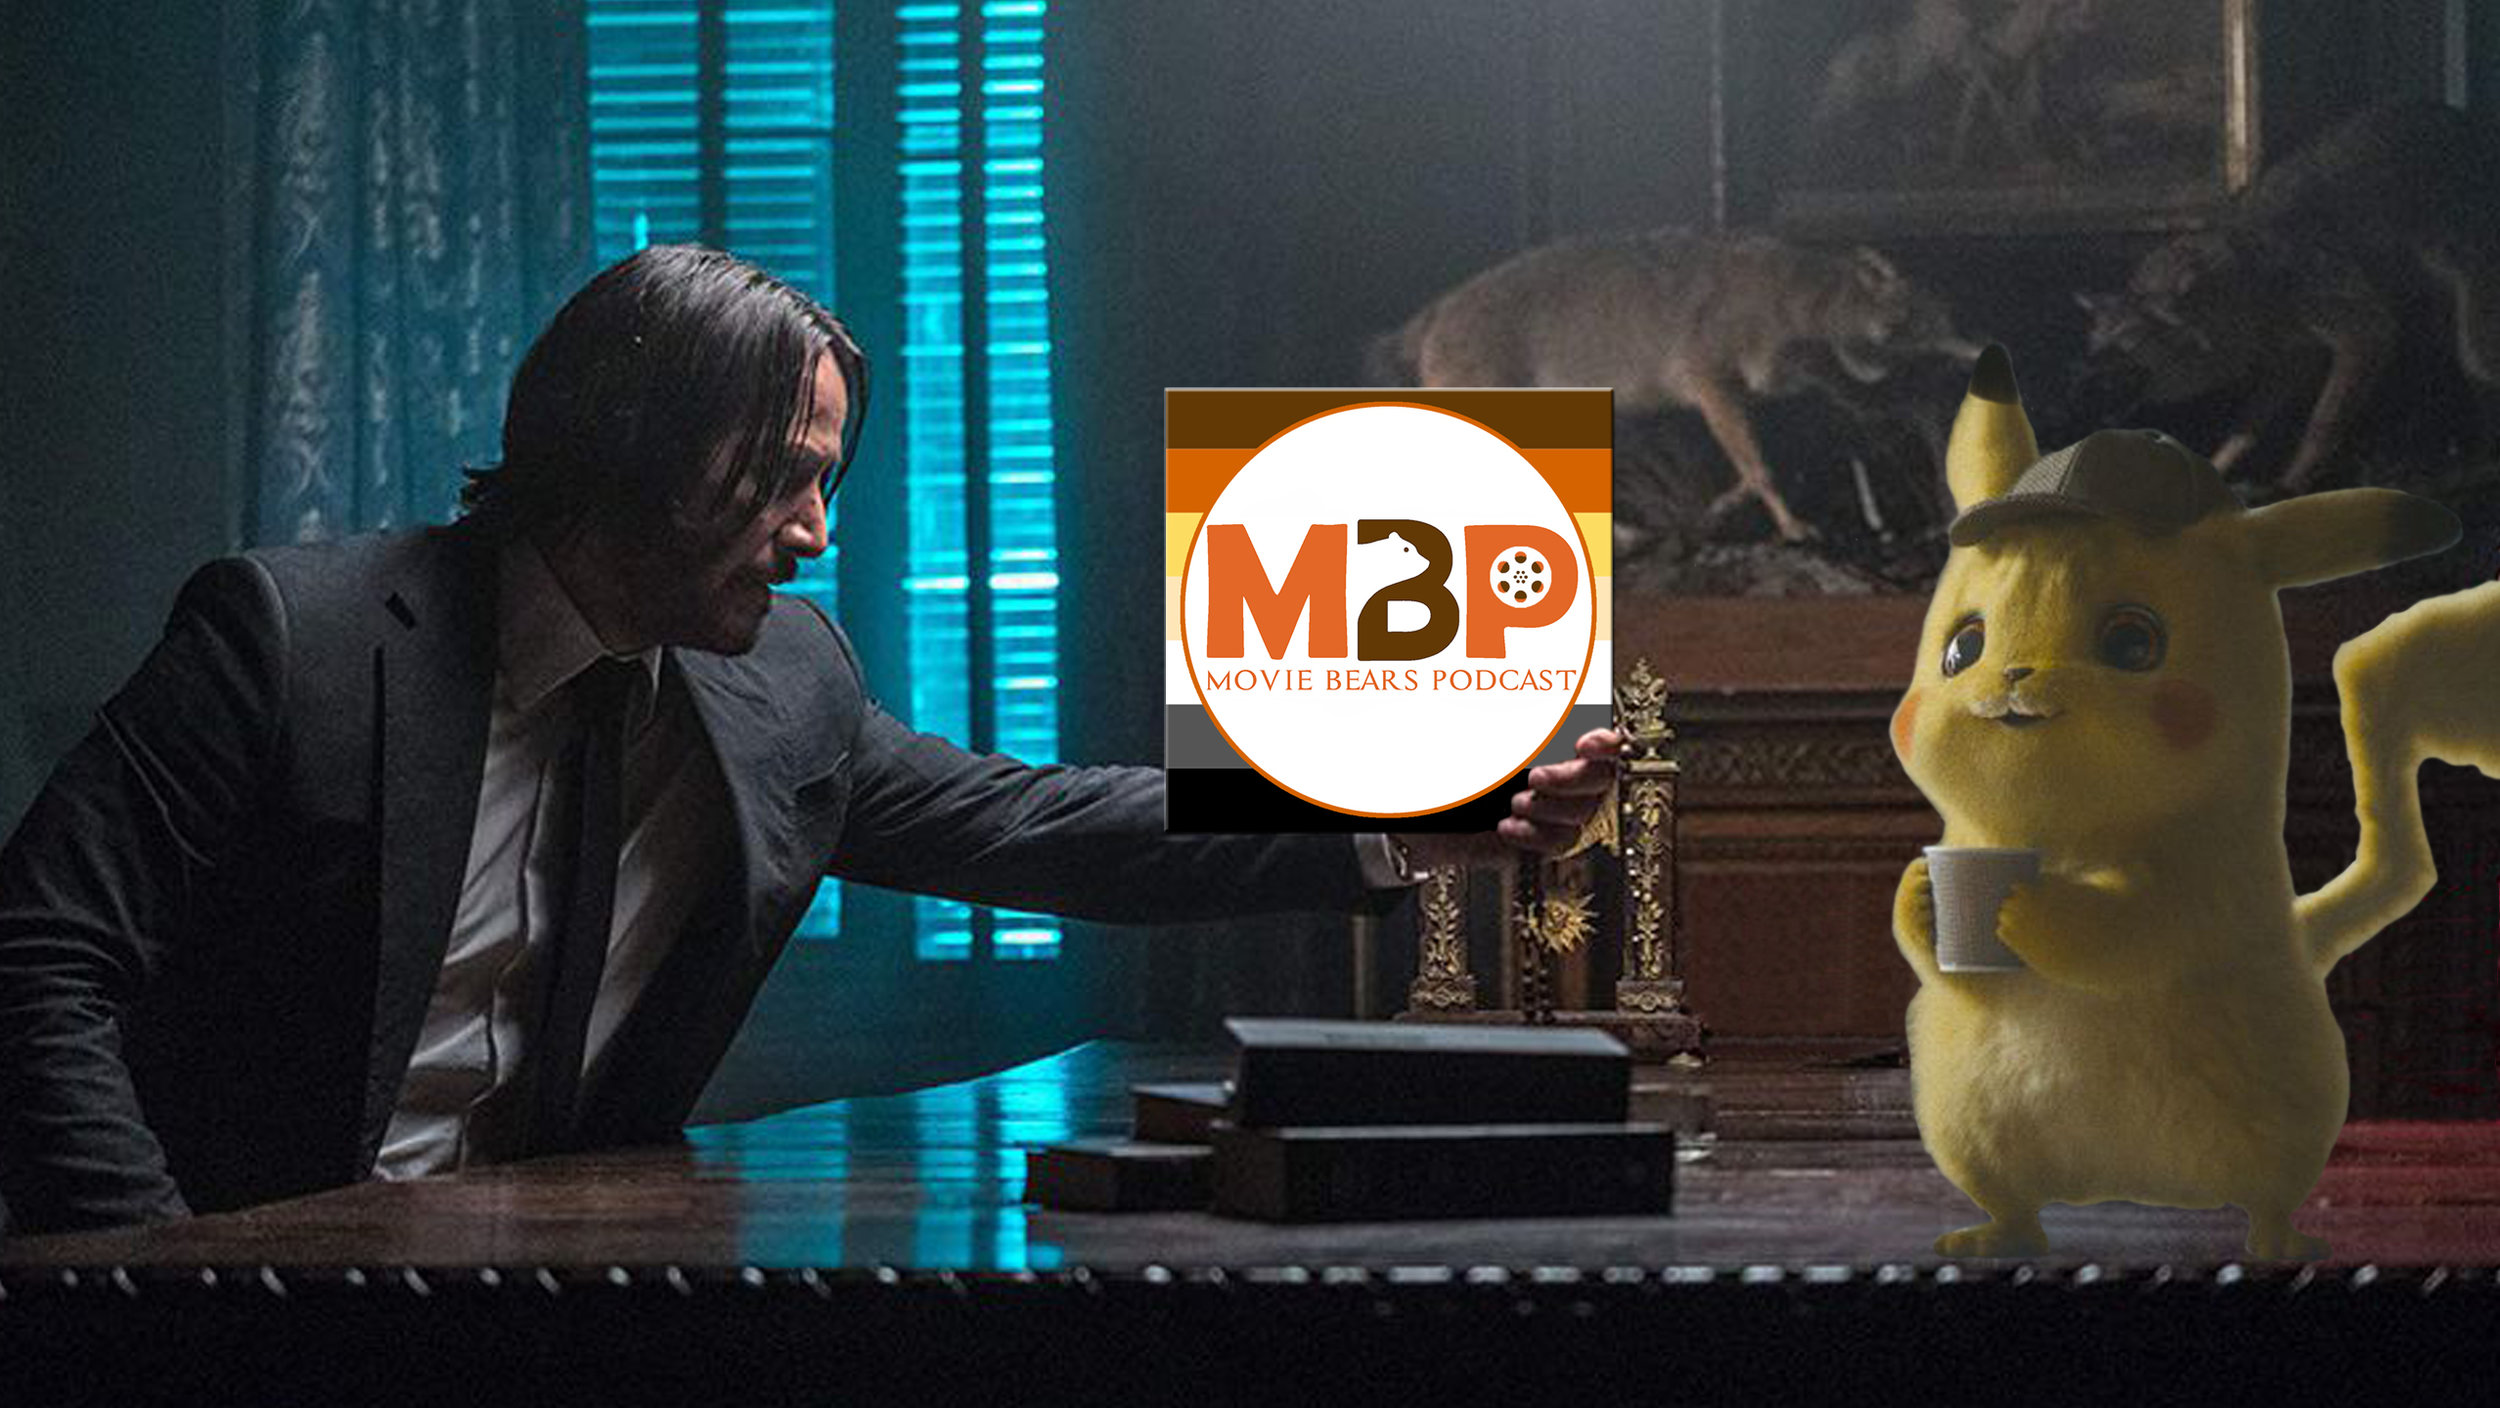 M   BP e3   24    -    'John Wick: Chapter 3 - Parabellum' and 'Pokemon: Detective Pikachu'    (5/21/19)    On this week's episode, we dive into not one but *two* films out right now: 'John Wick Chapter 3: Parabellum' and 'Pokèmon: Detective Pikachu.' Listen in for our thoughts and be sure to share yours with us on Facebook or Twitter! Enjoy the show. :)